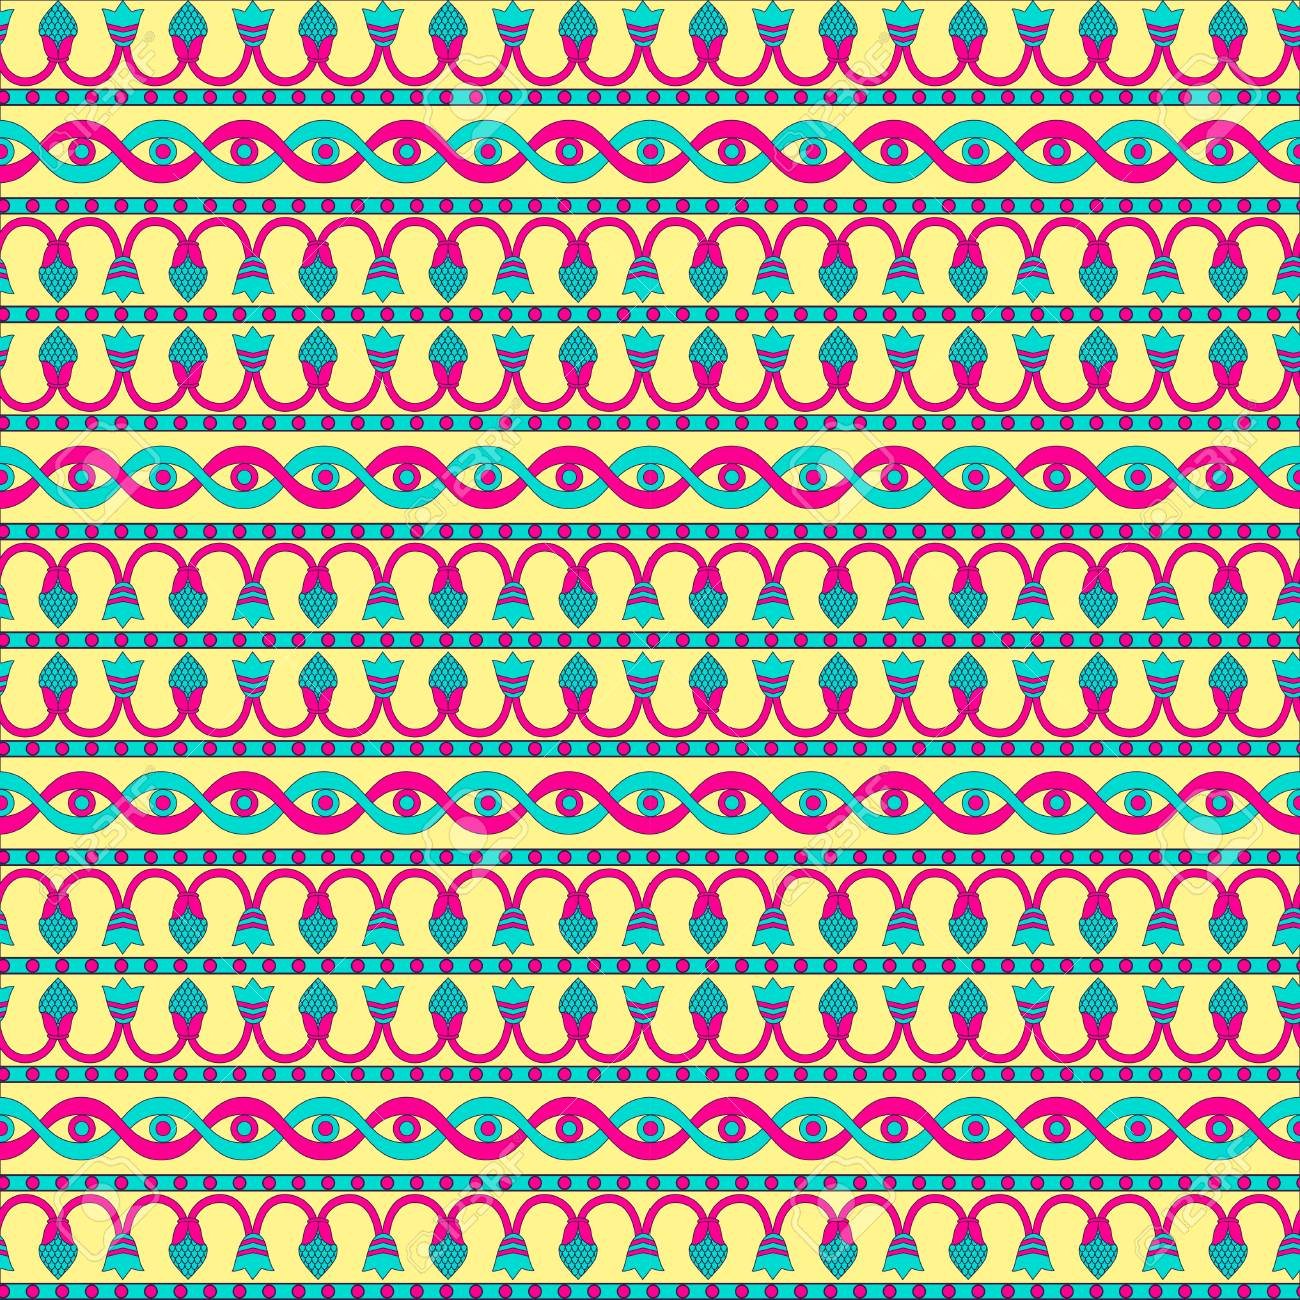 Ancient mesopotamia ornament tribal seamless pattern an be tribal seamless pattern an be used for cloth jackets stopboris Image collections